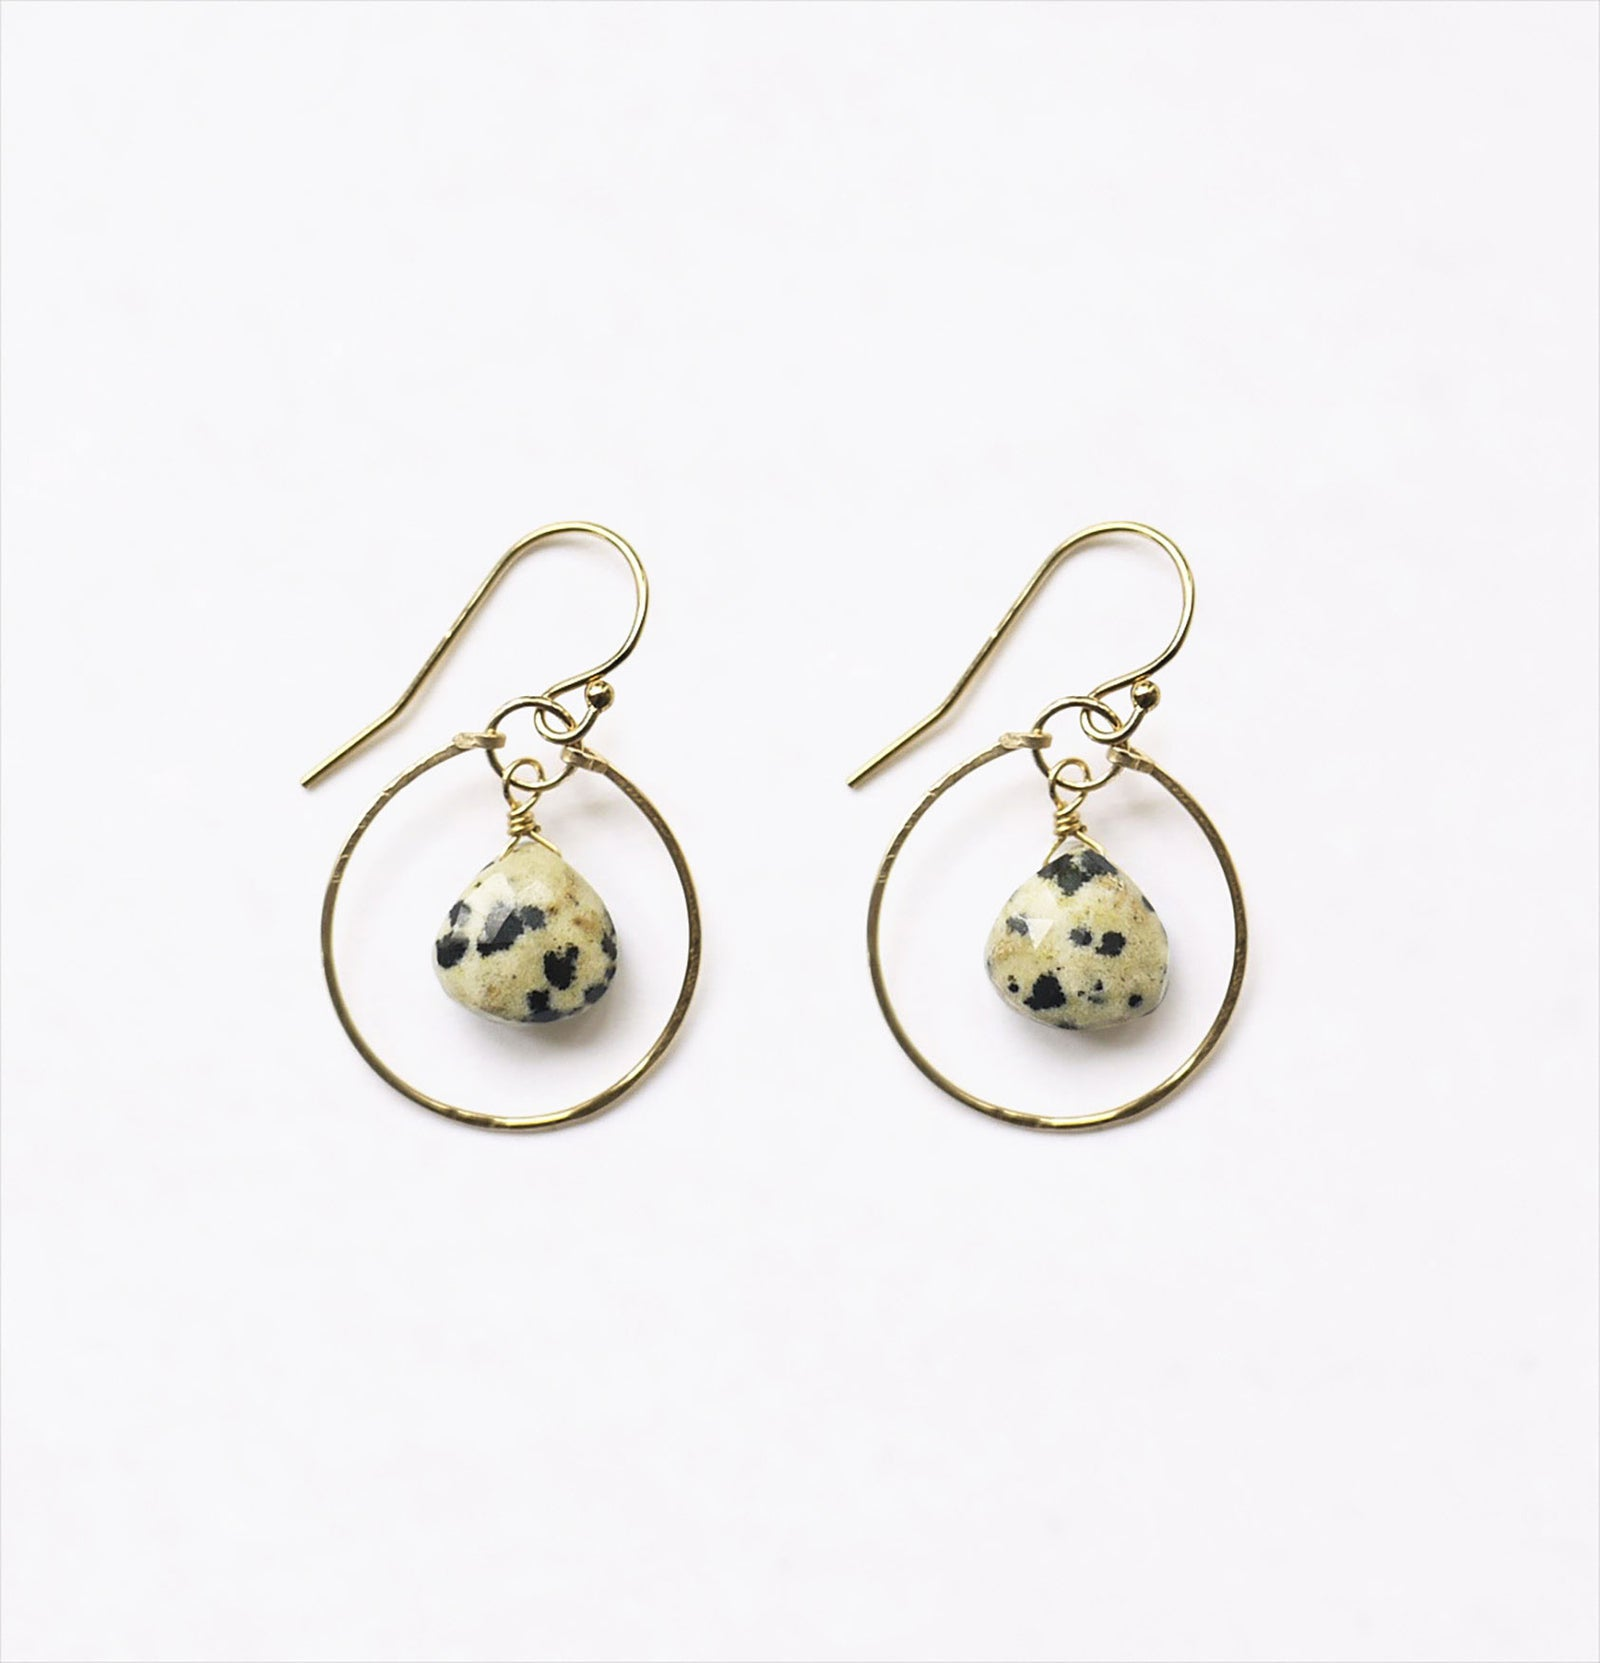 Wanderlust Life 14k gold filled hammered hoop earring with a suspended dalmatian jasper faceted semi precious gemstone